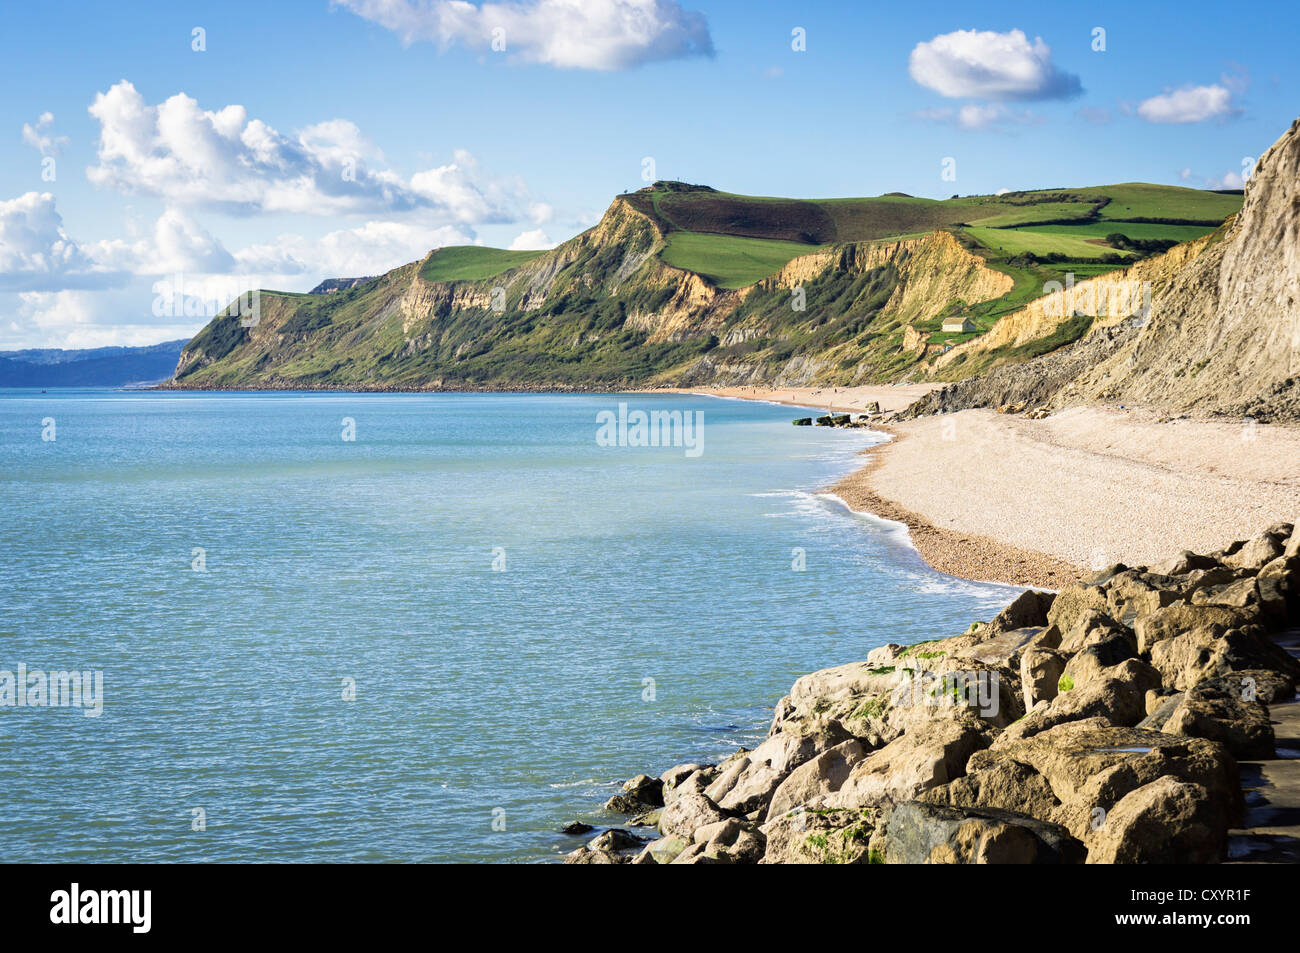 View along the Jurassic Coast - looking from West Bay, Dorset towards Charmouth bay, Dorset, UK - Stock Image